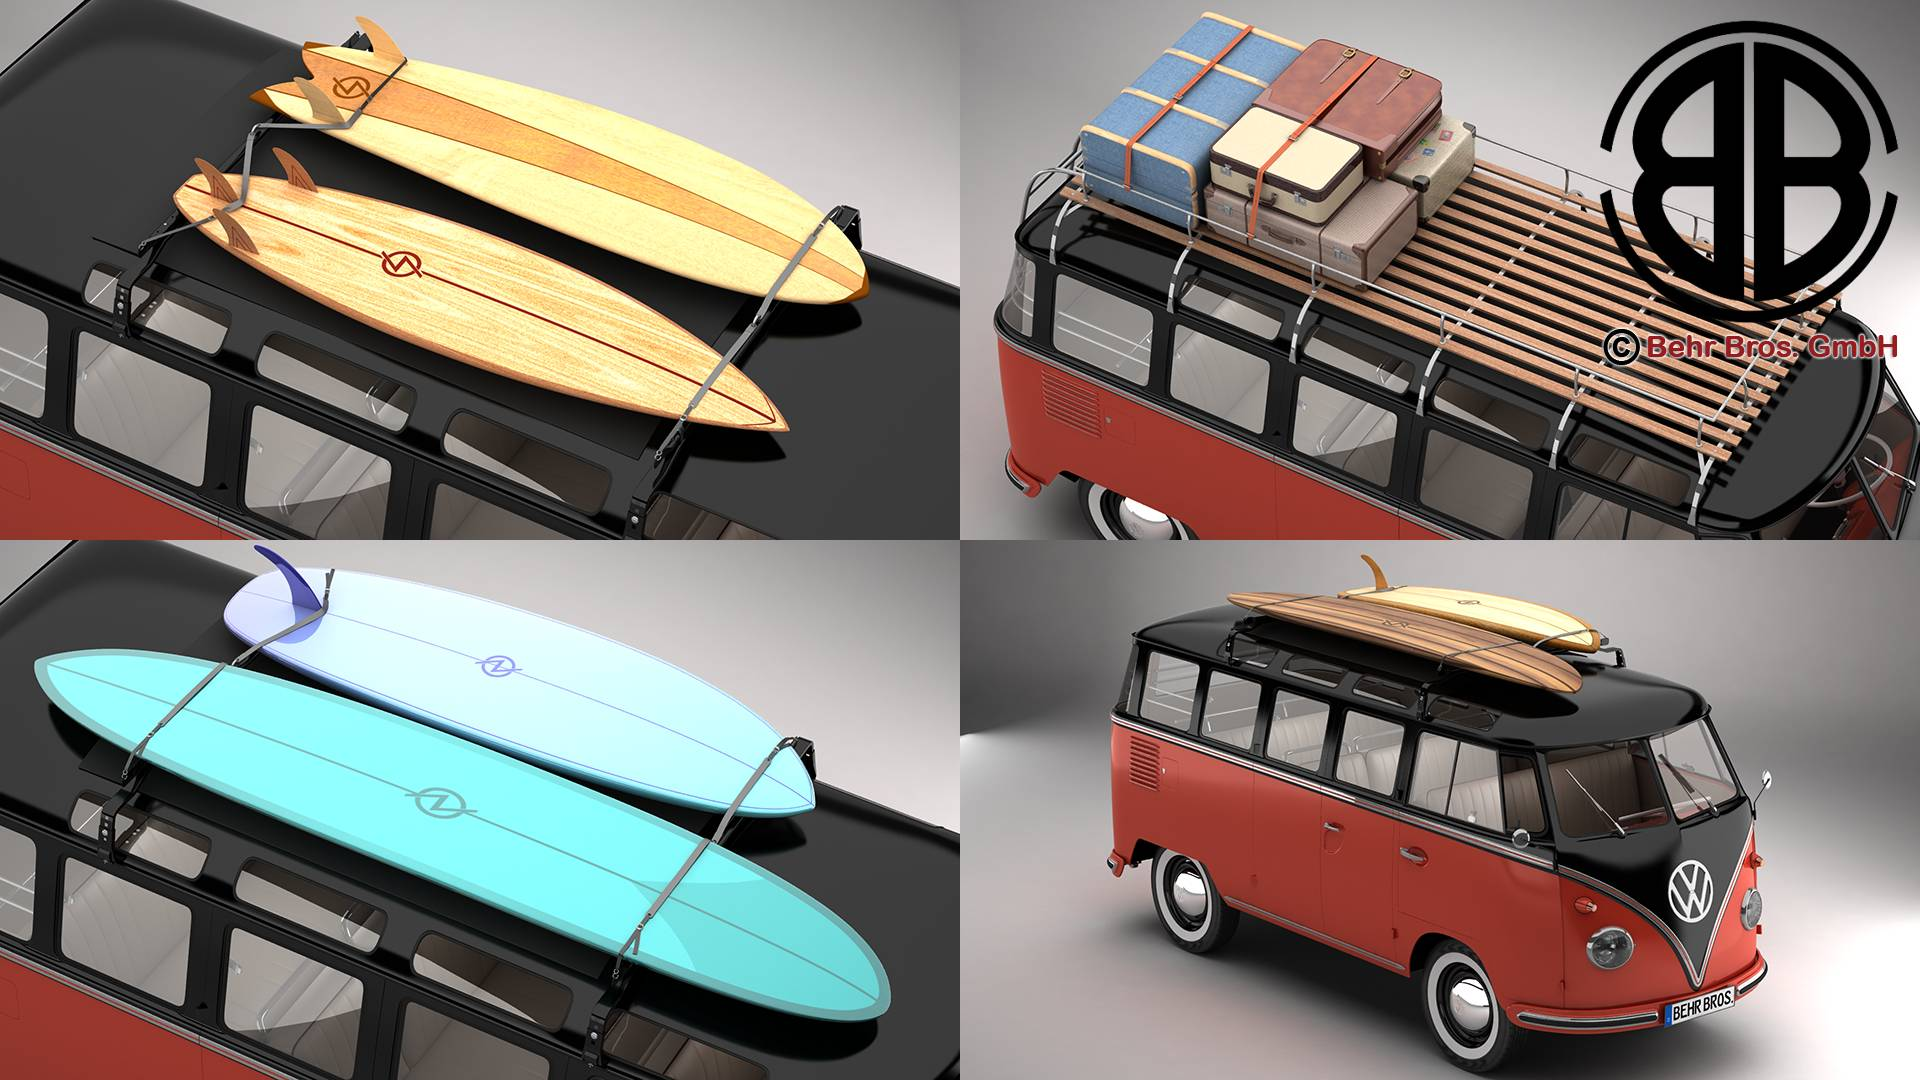 volkswagen t1 samba 1959 accessories 3d model 3ds max fbx c4d lwo ma mb obj 266972